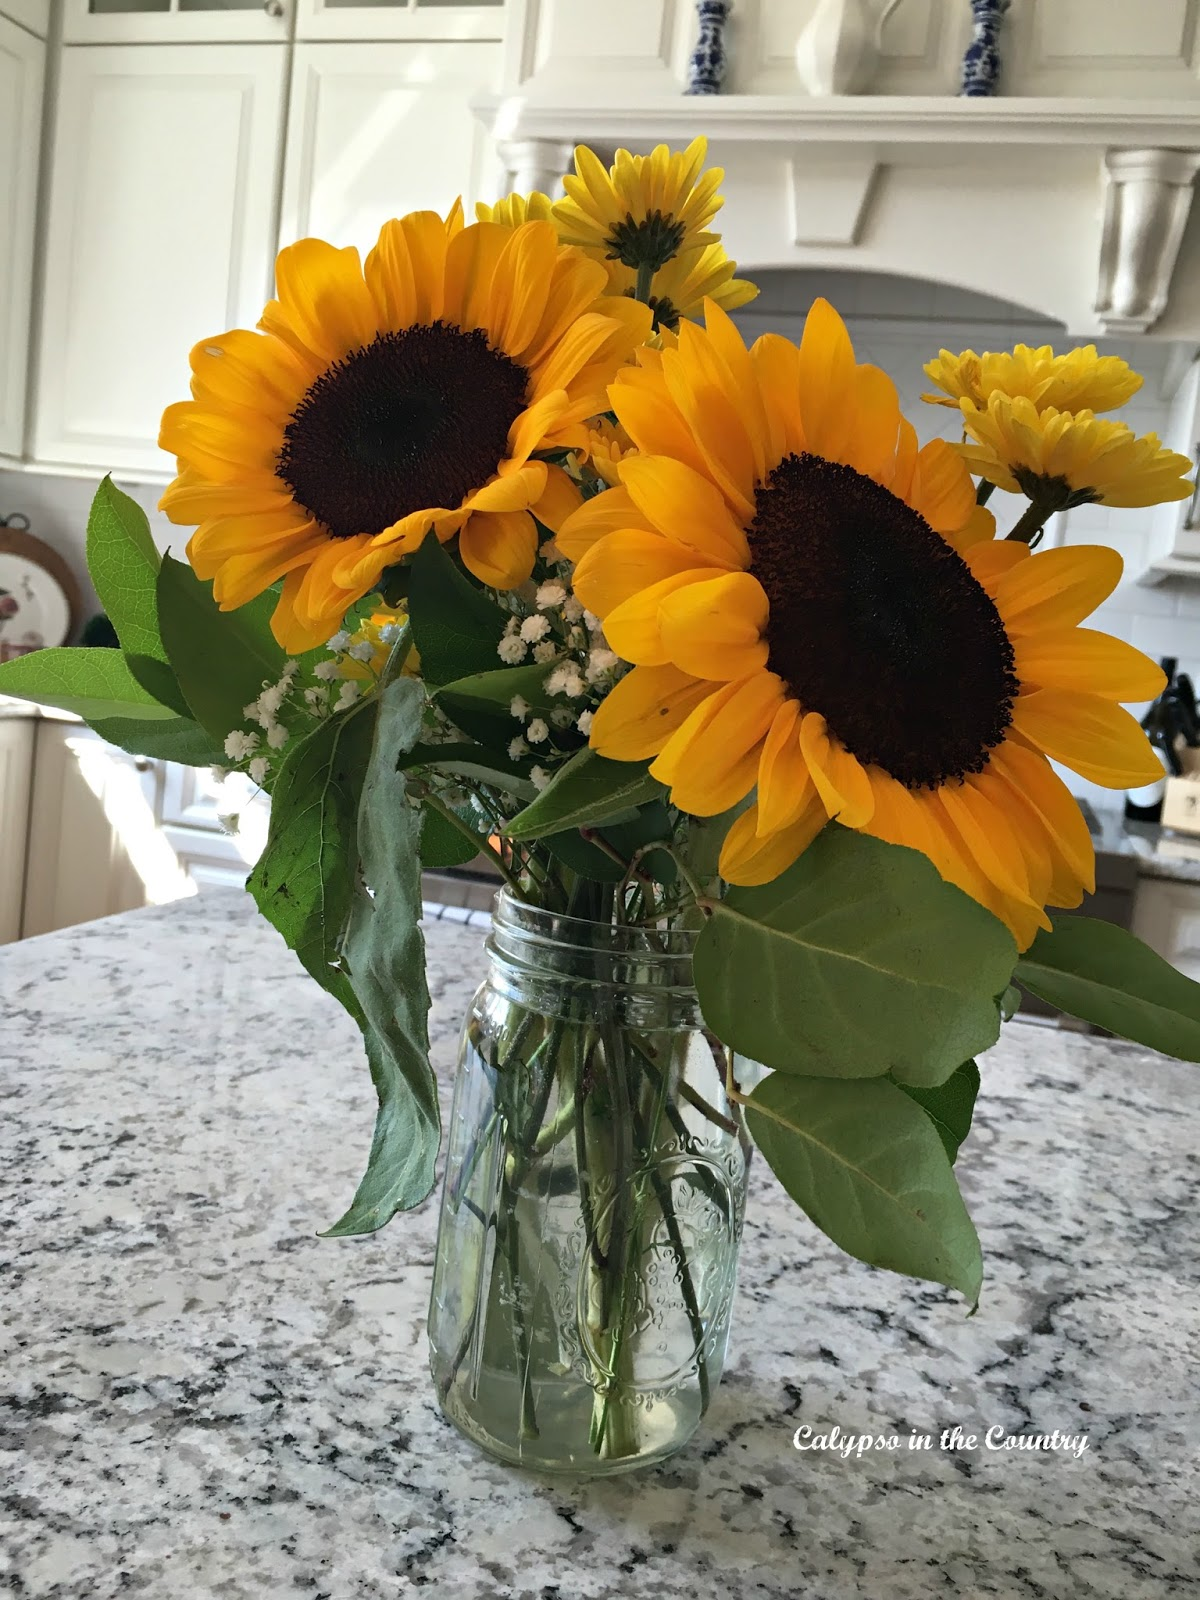 Sunflowers in the White Kitchen - Inspired me to display them with my blue and white porcelain